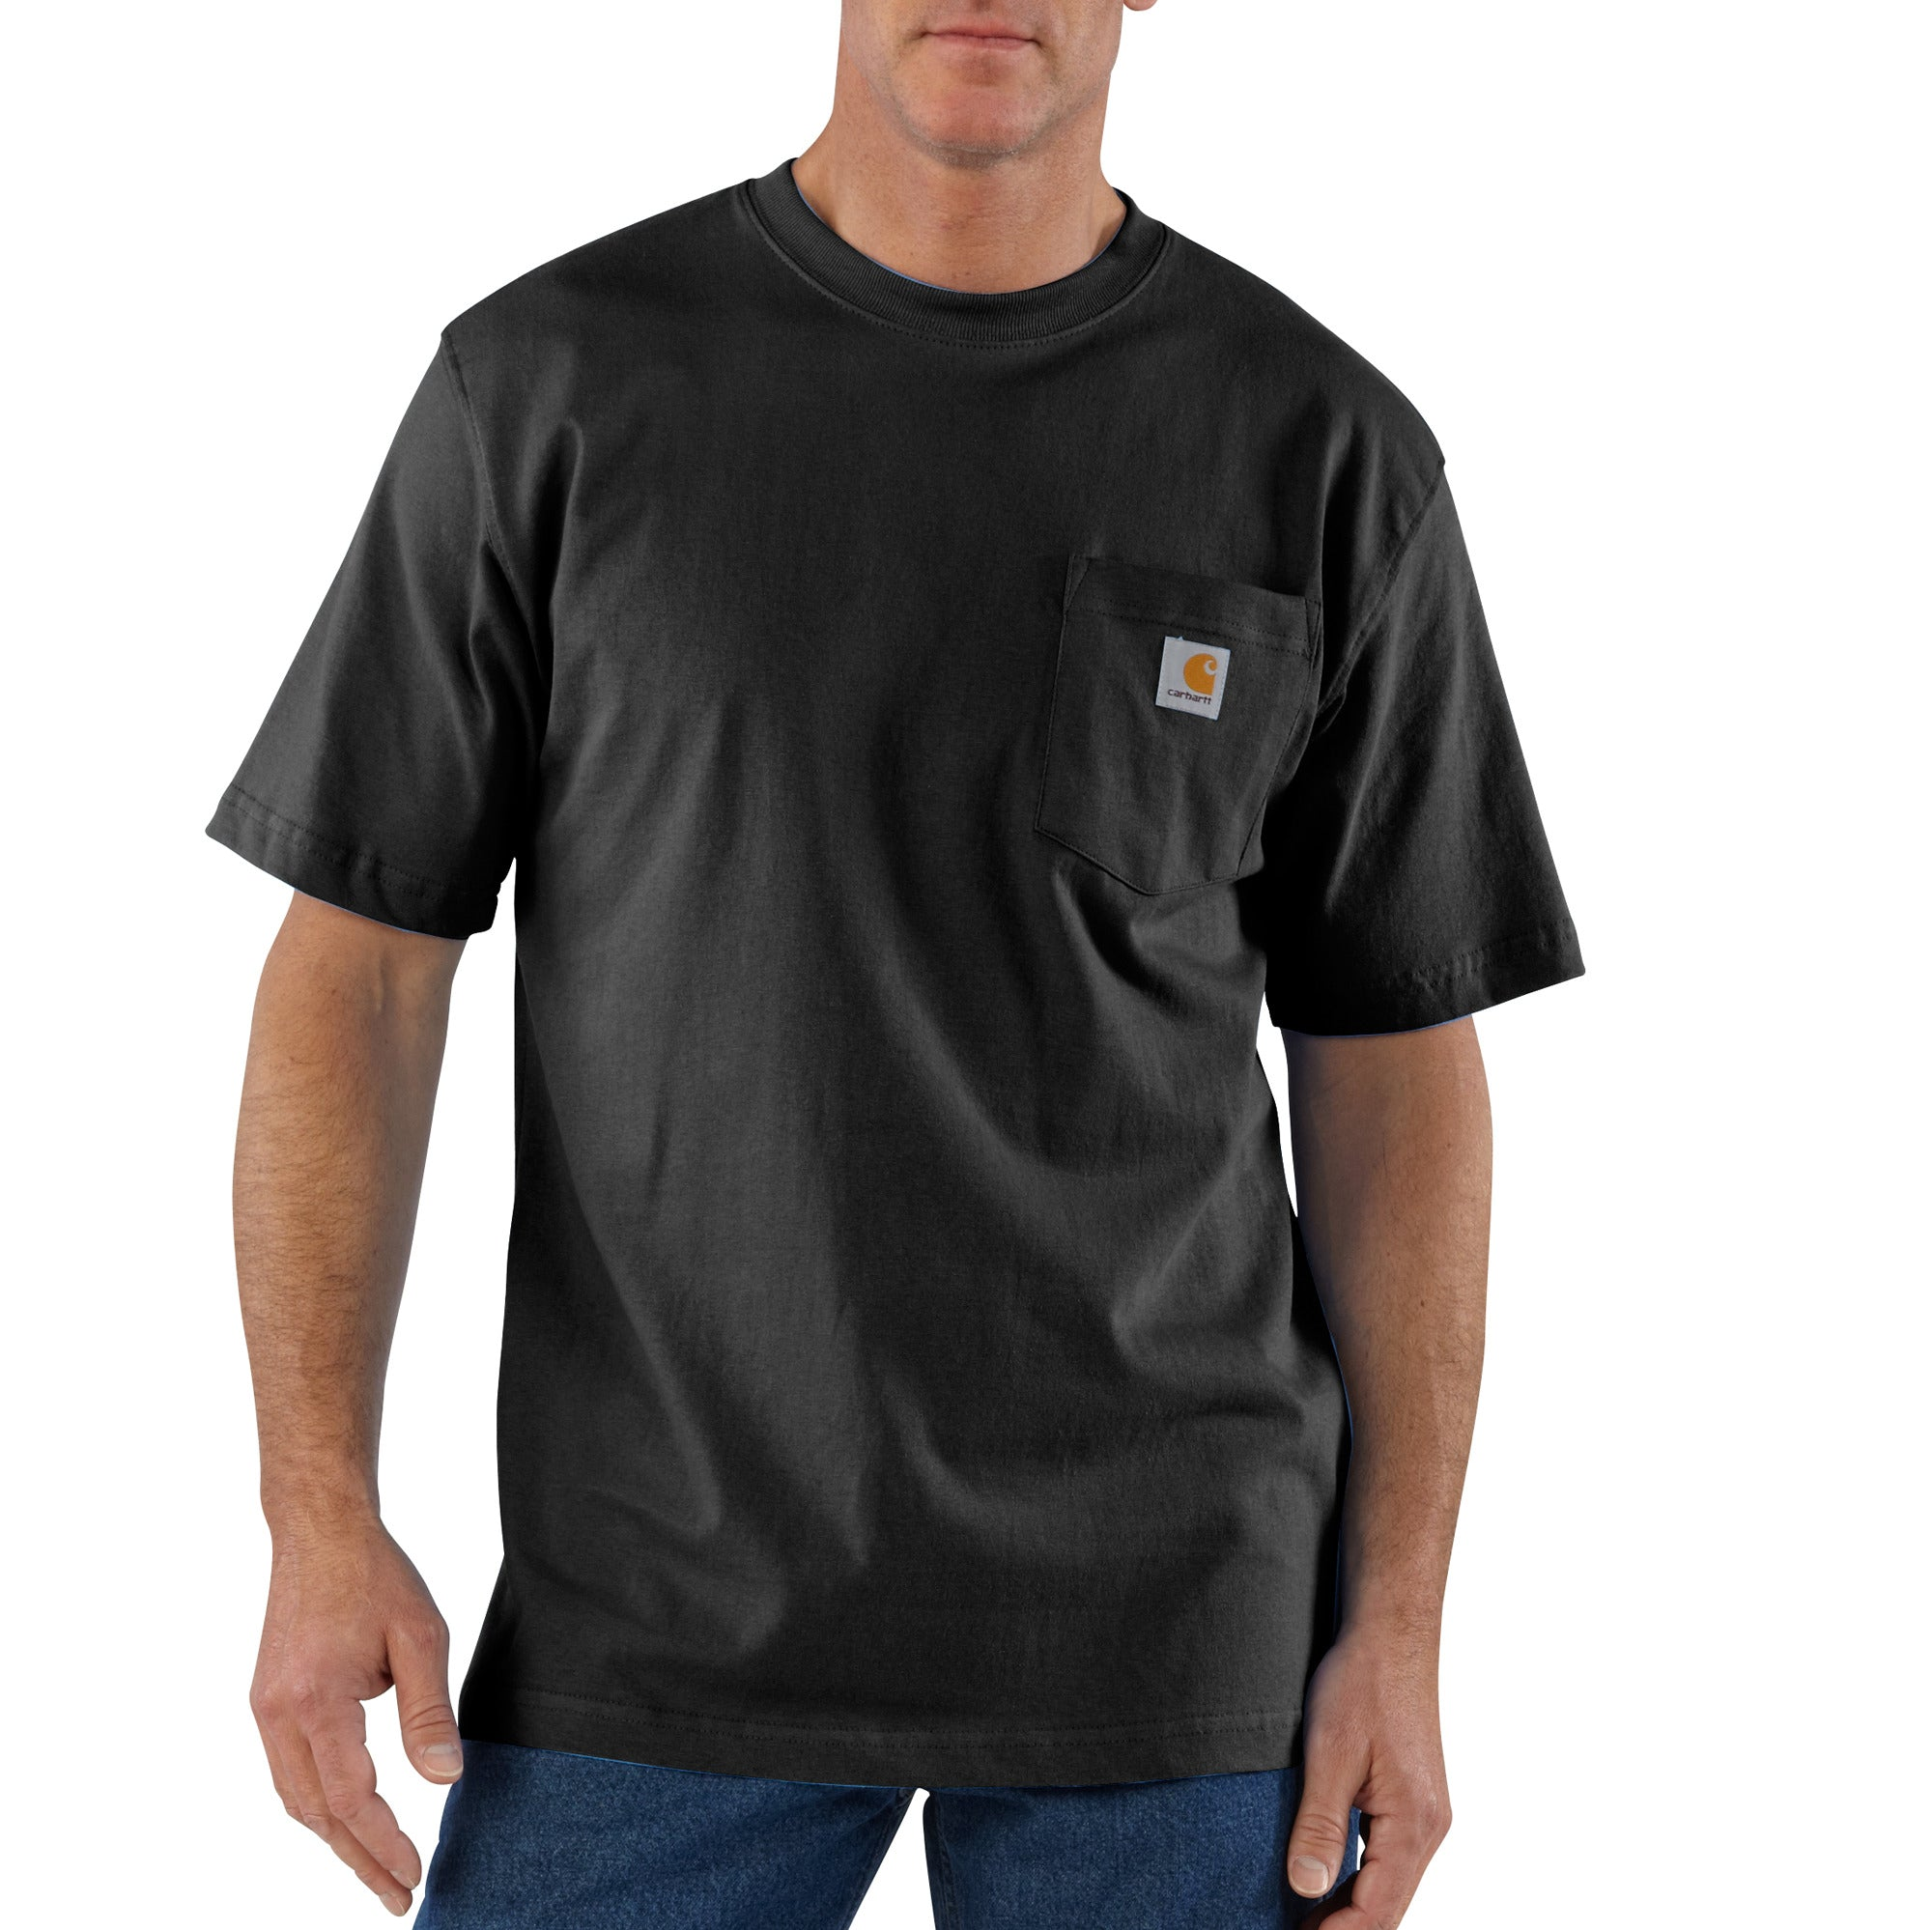 'Carhartt' Men's Workwear Heavyweight Pocket T-Shirt - Black